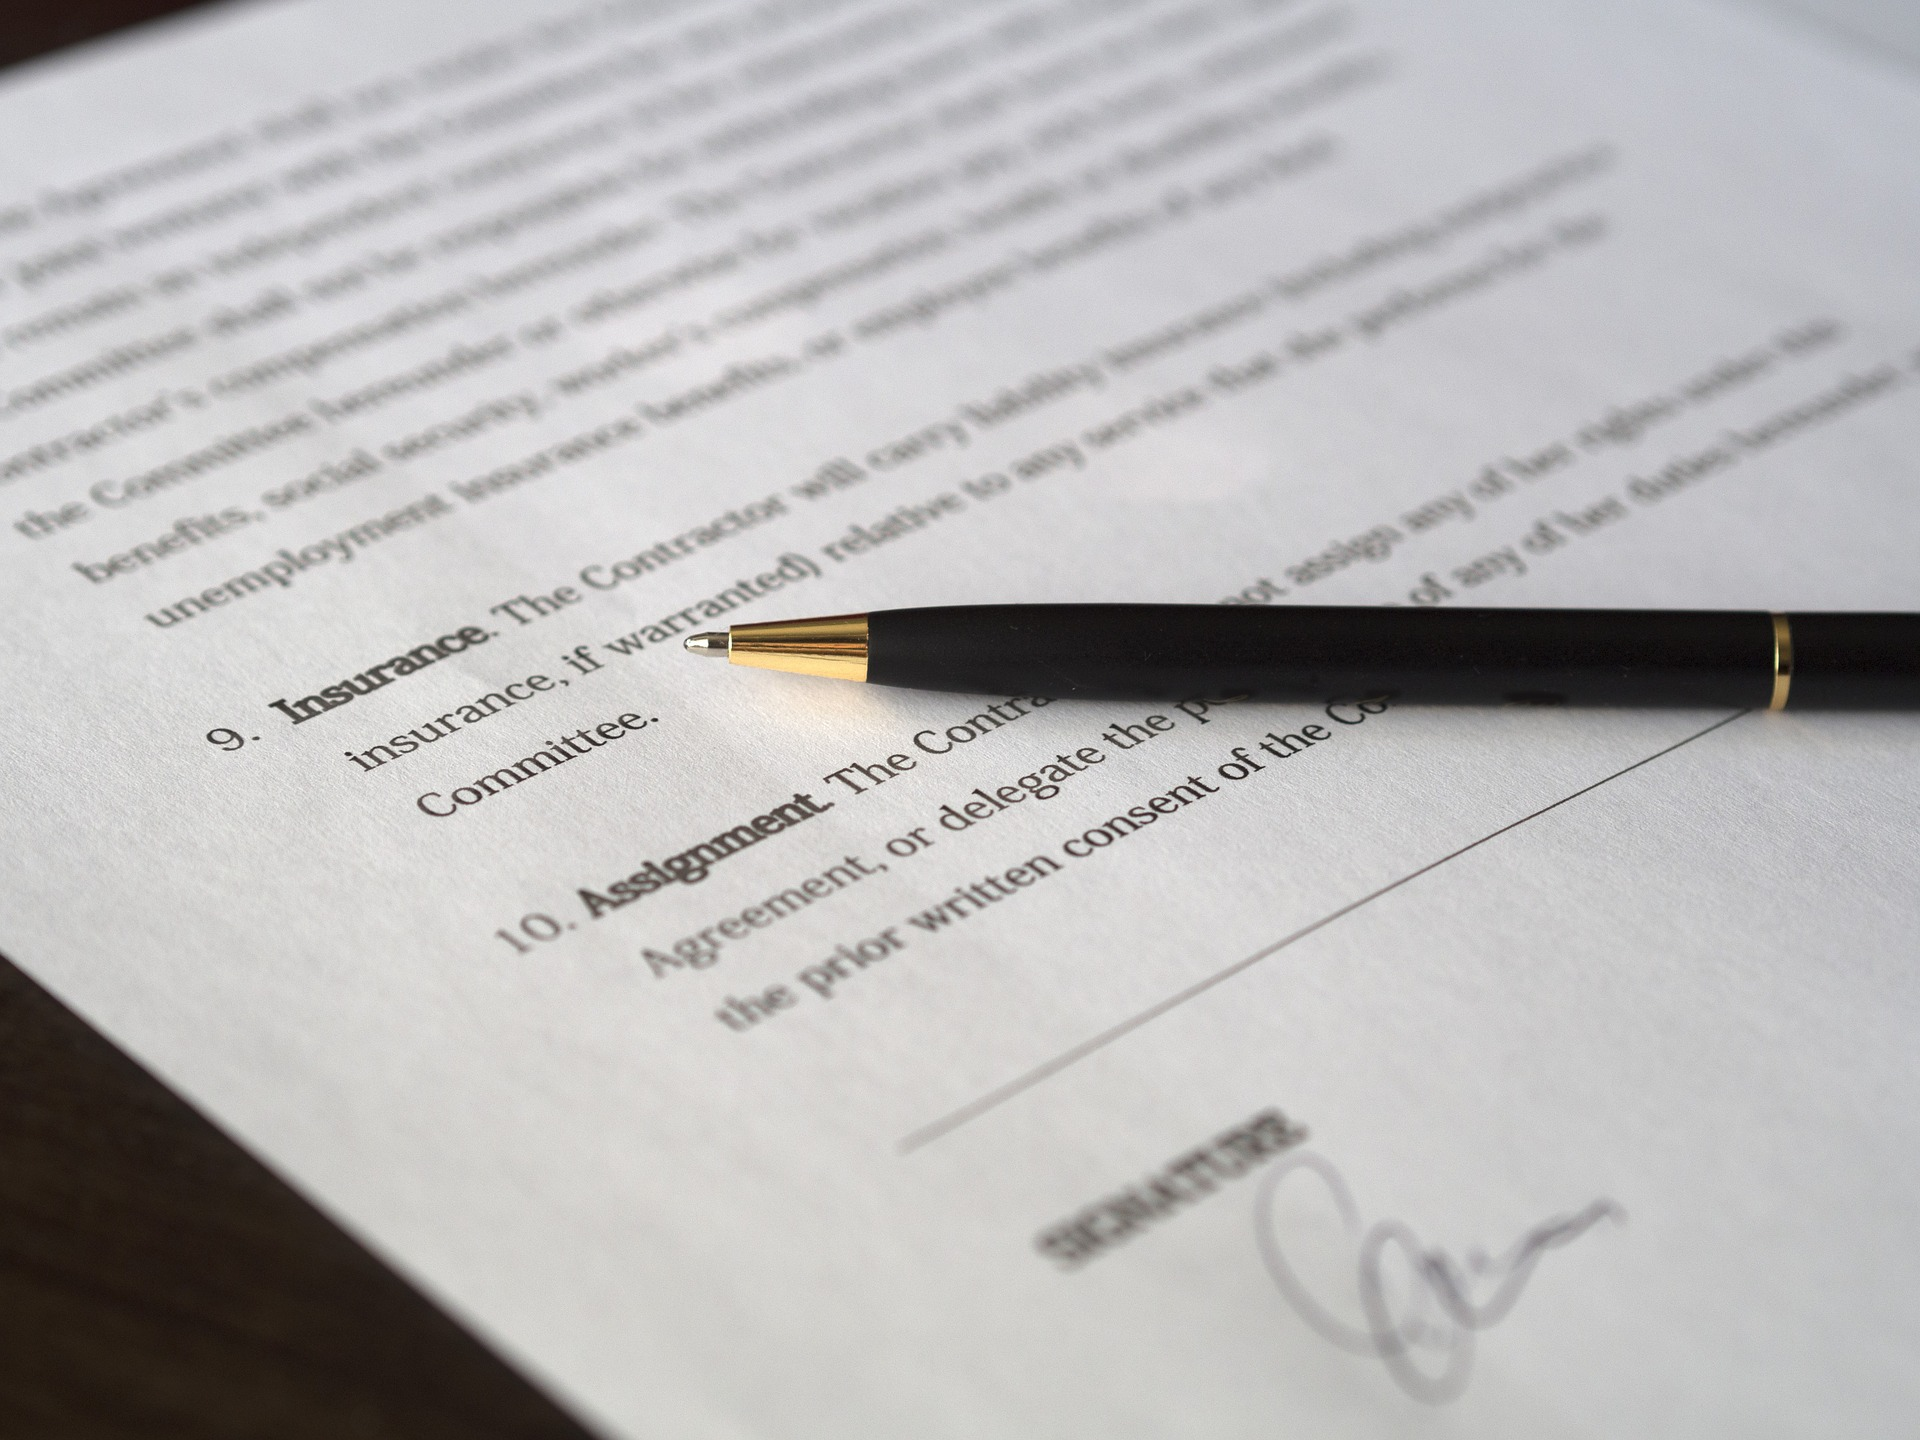 How do you ensure that your business dealings are compliant with trade regulations?